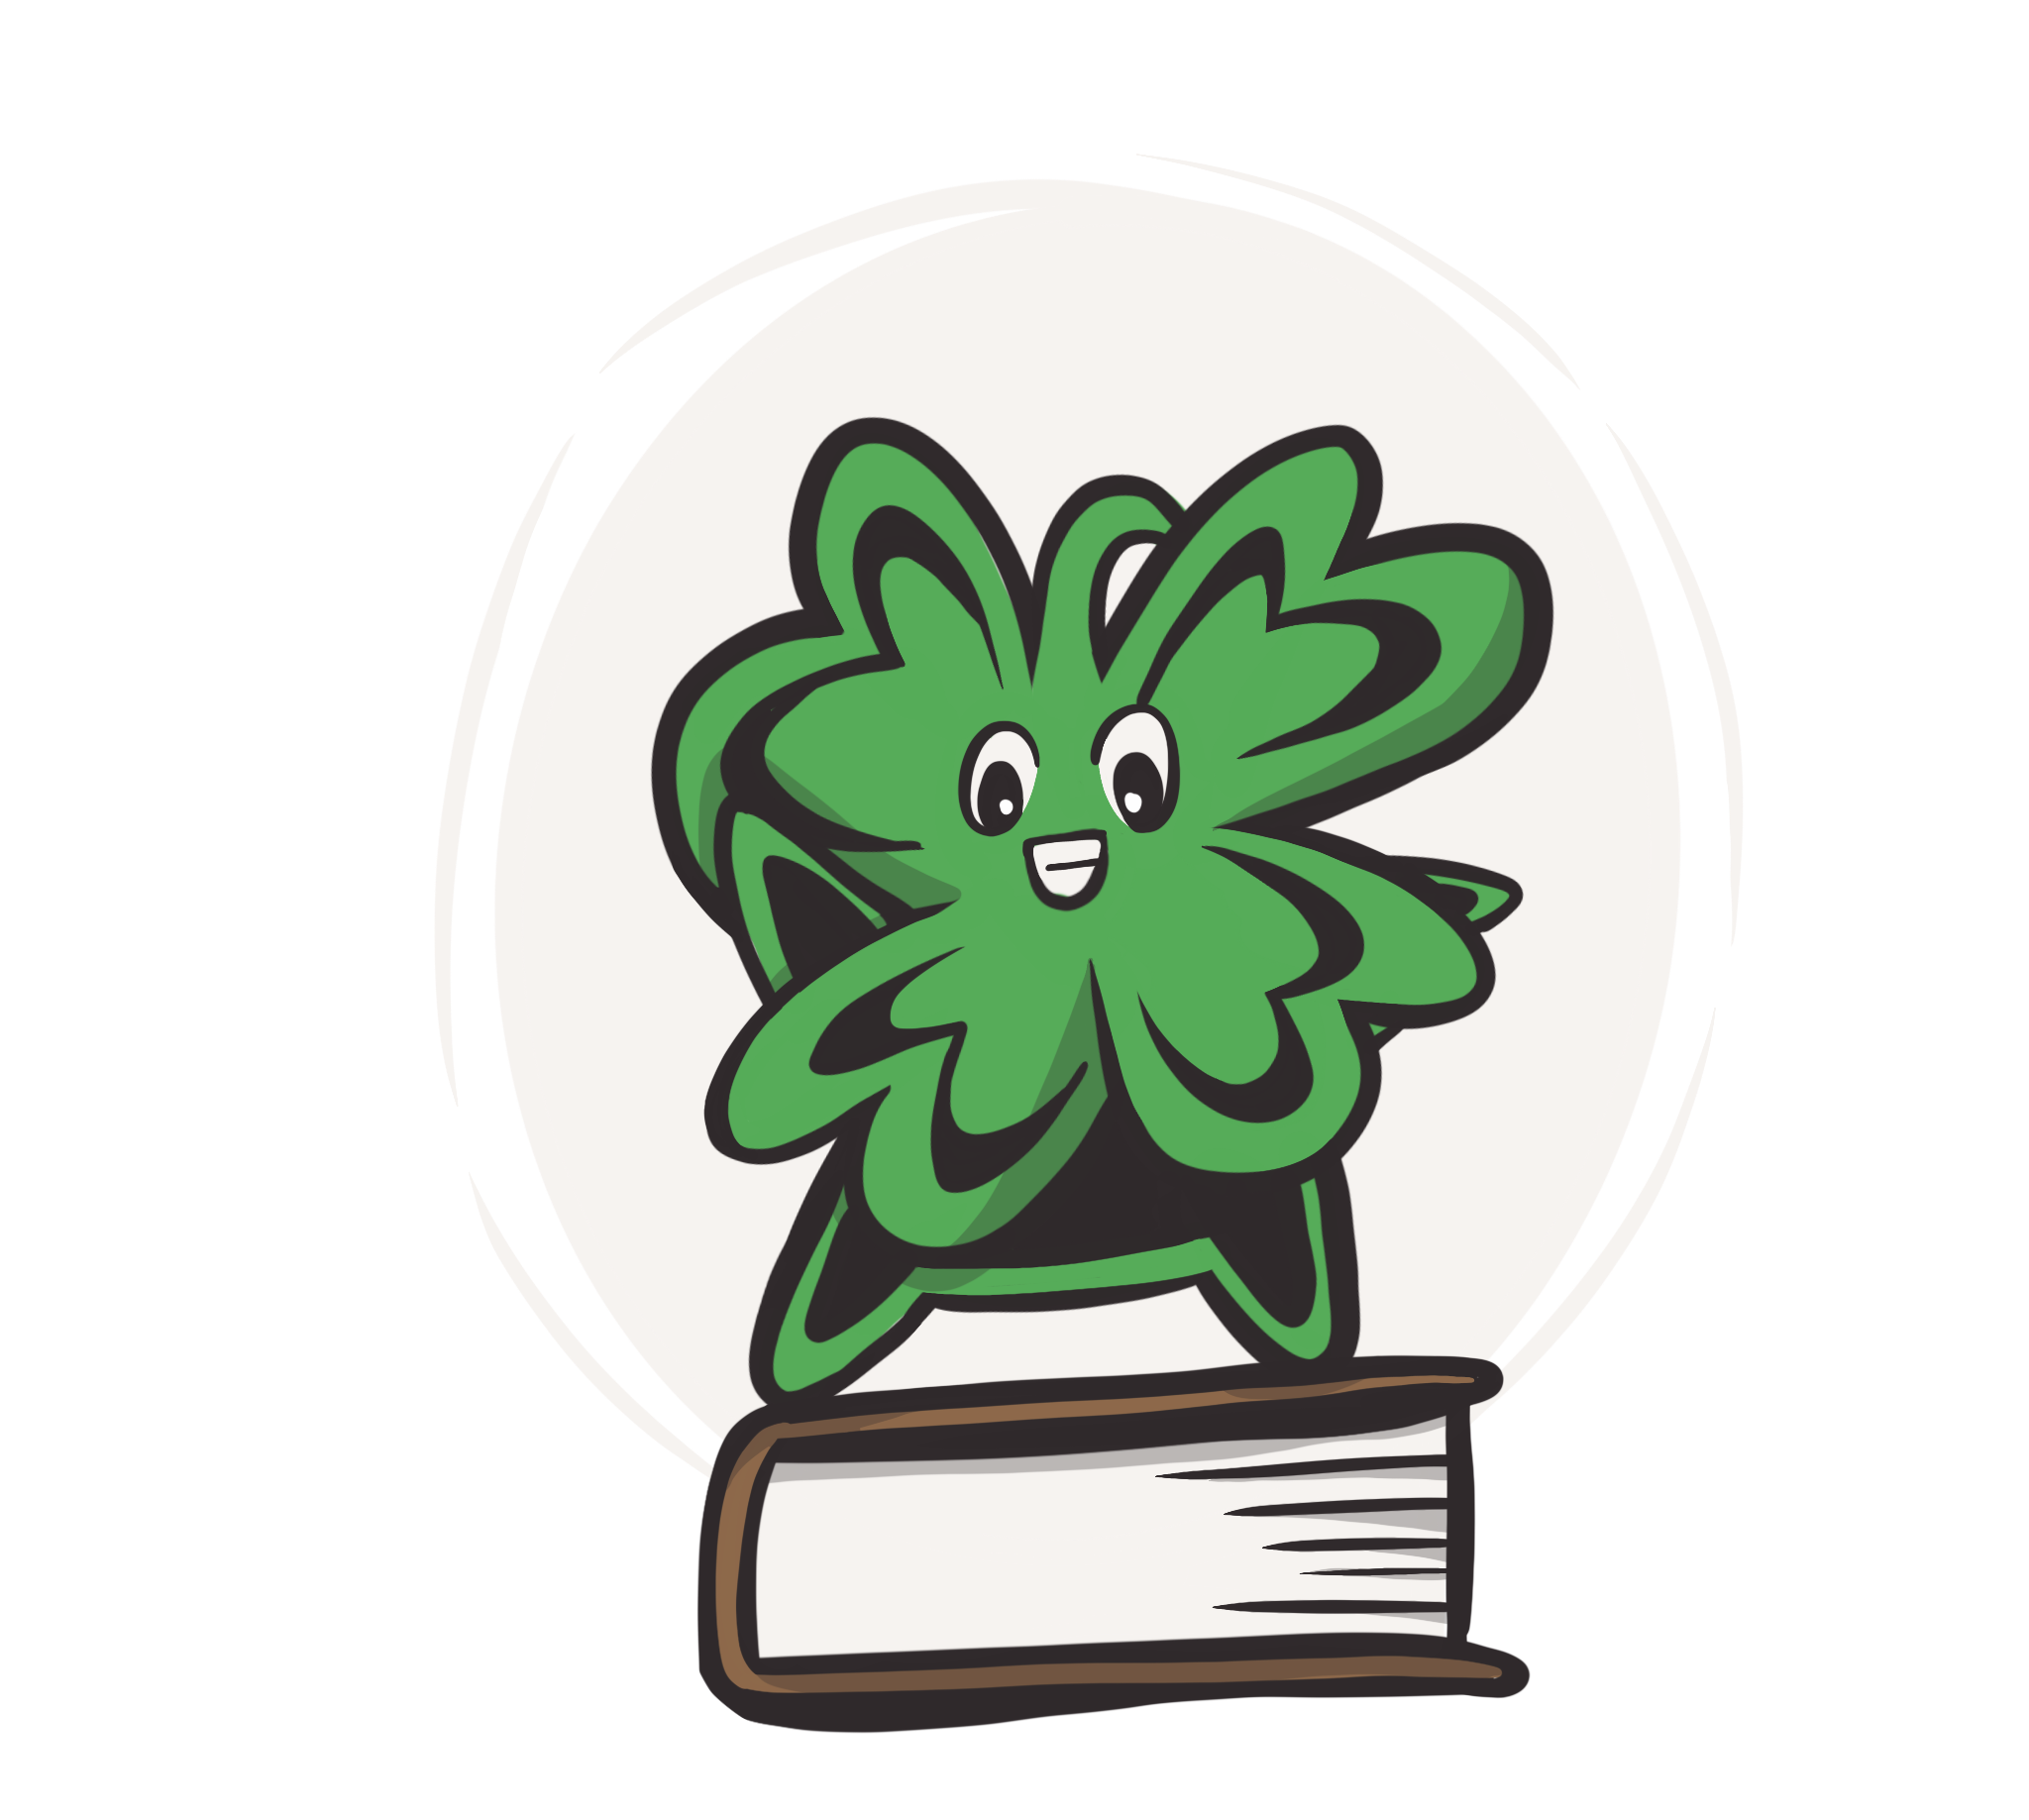 a four leaf clover character standing on book